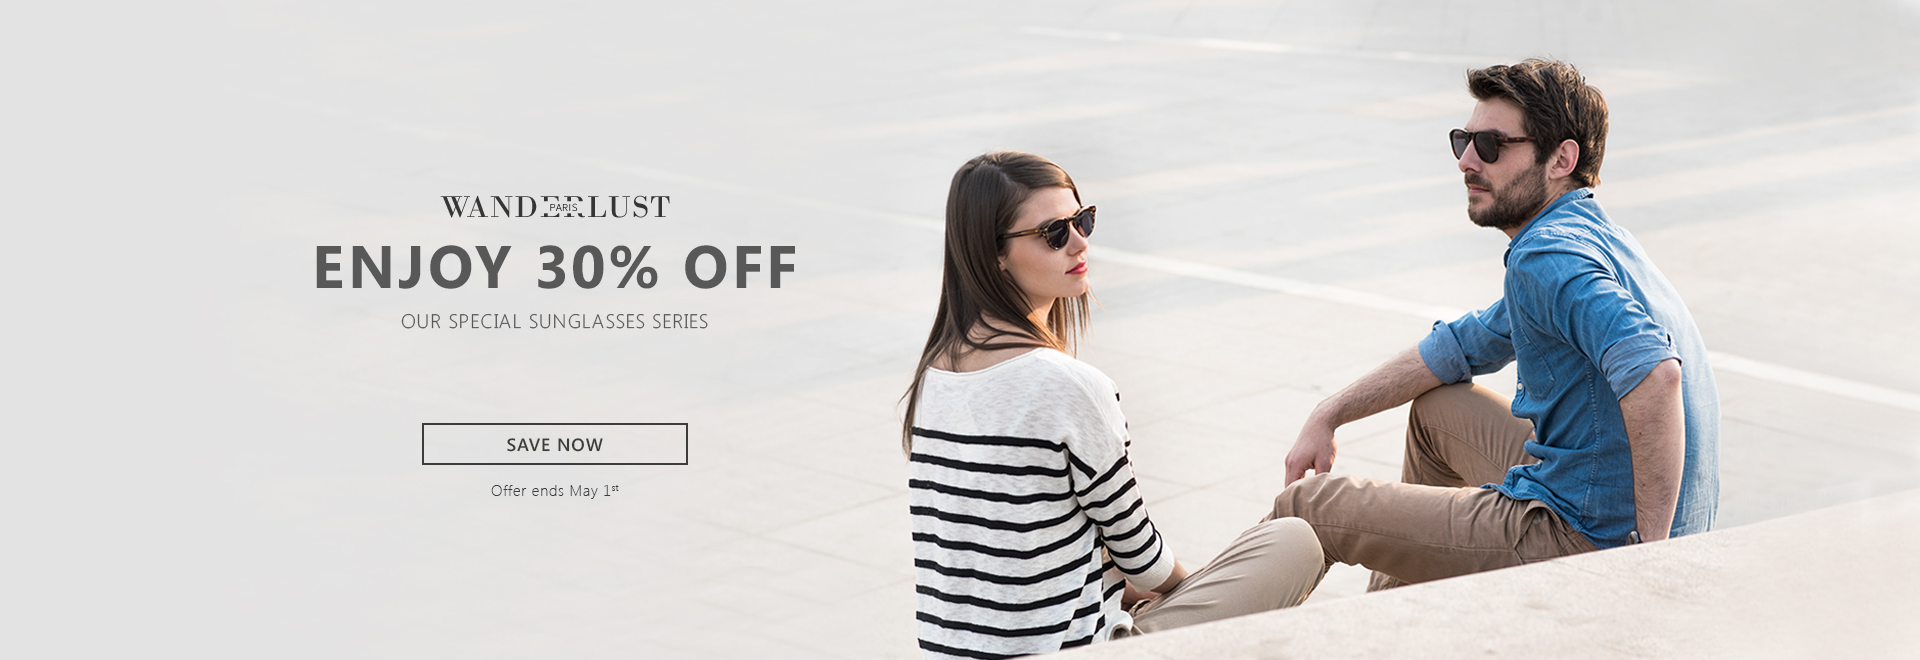 Enjoy 30% off OUR SPECIAL SUNGLASSES SERIES